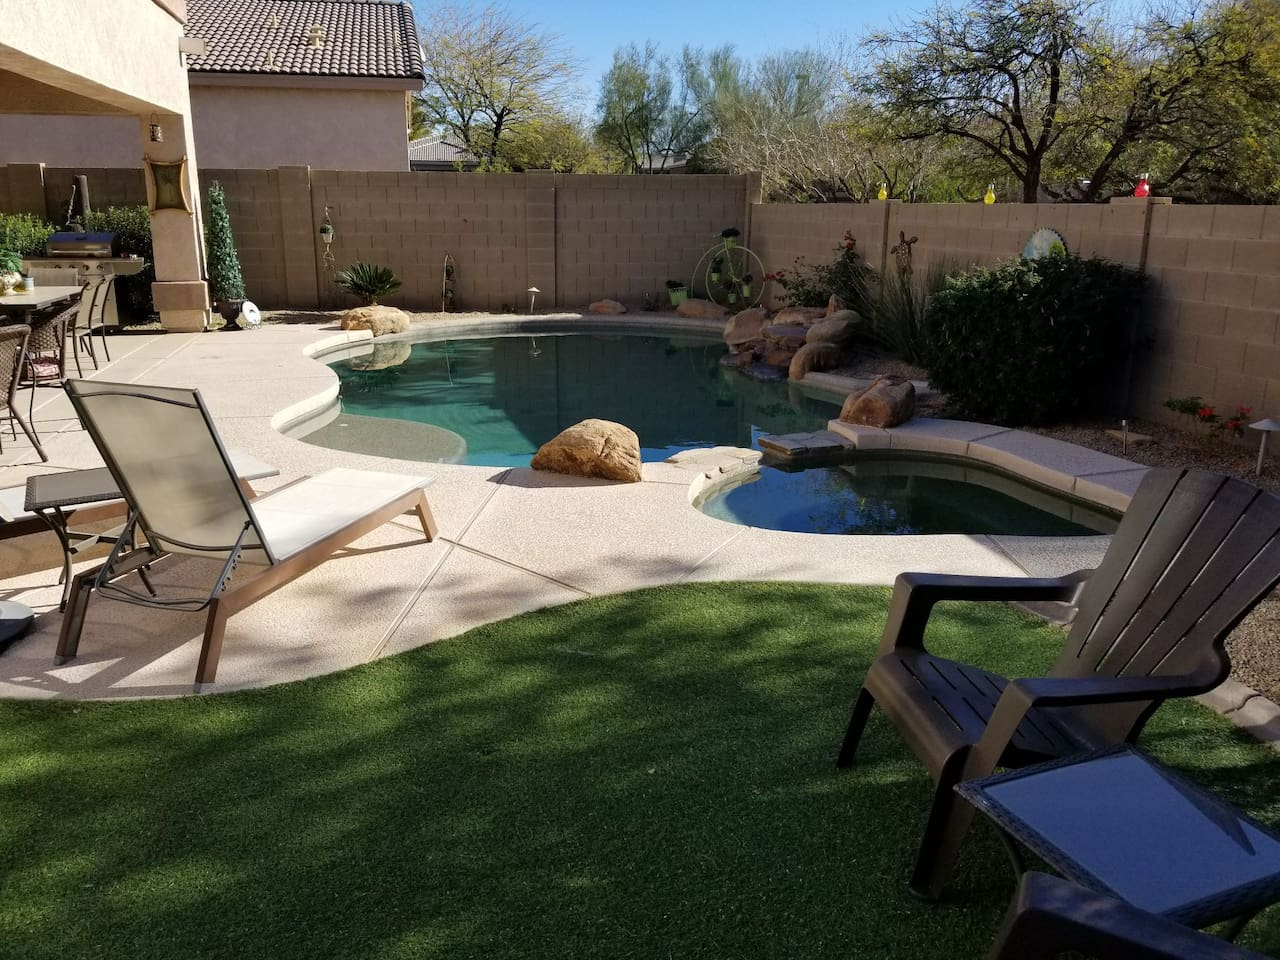 Cozy pool area to relax